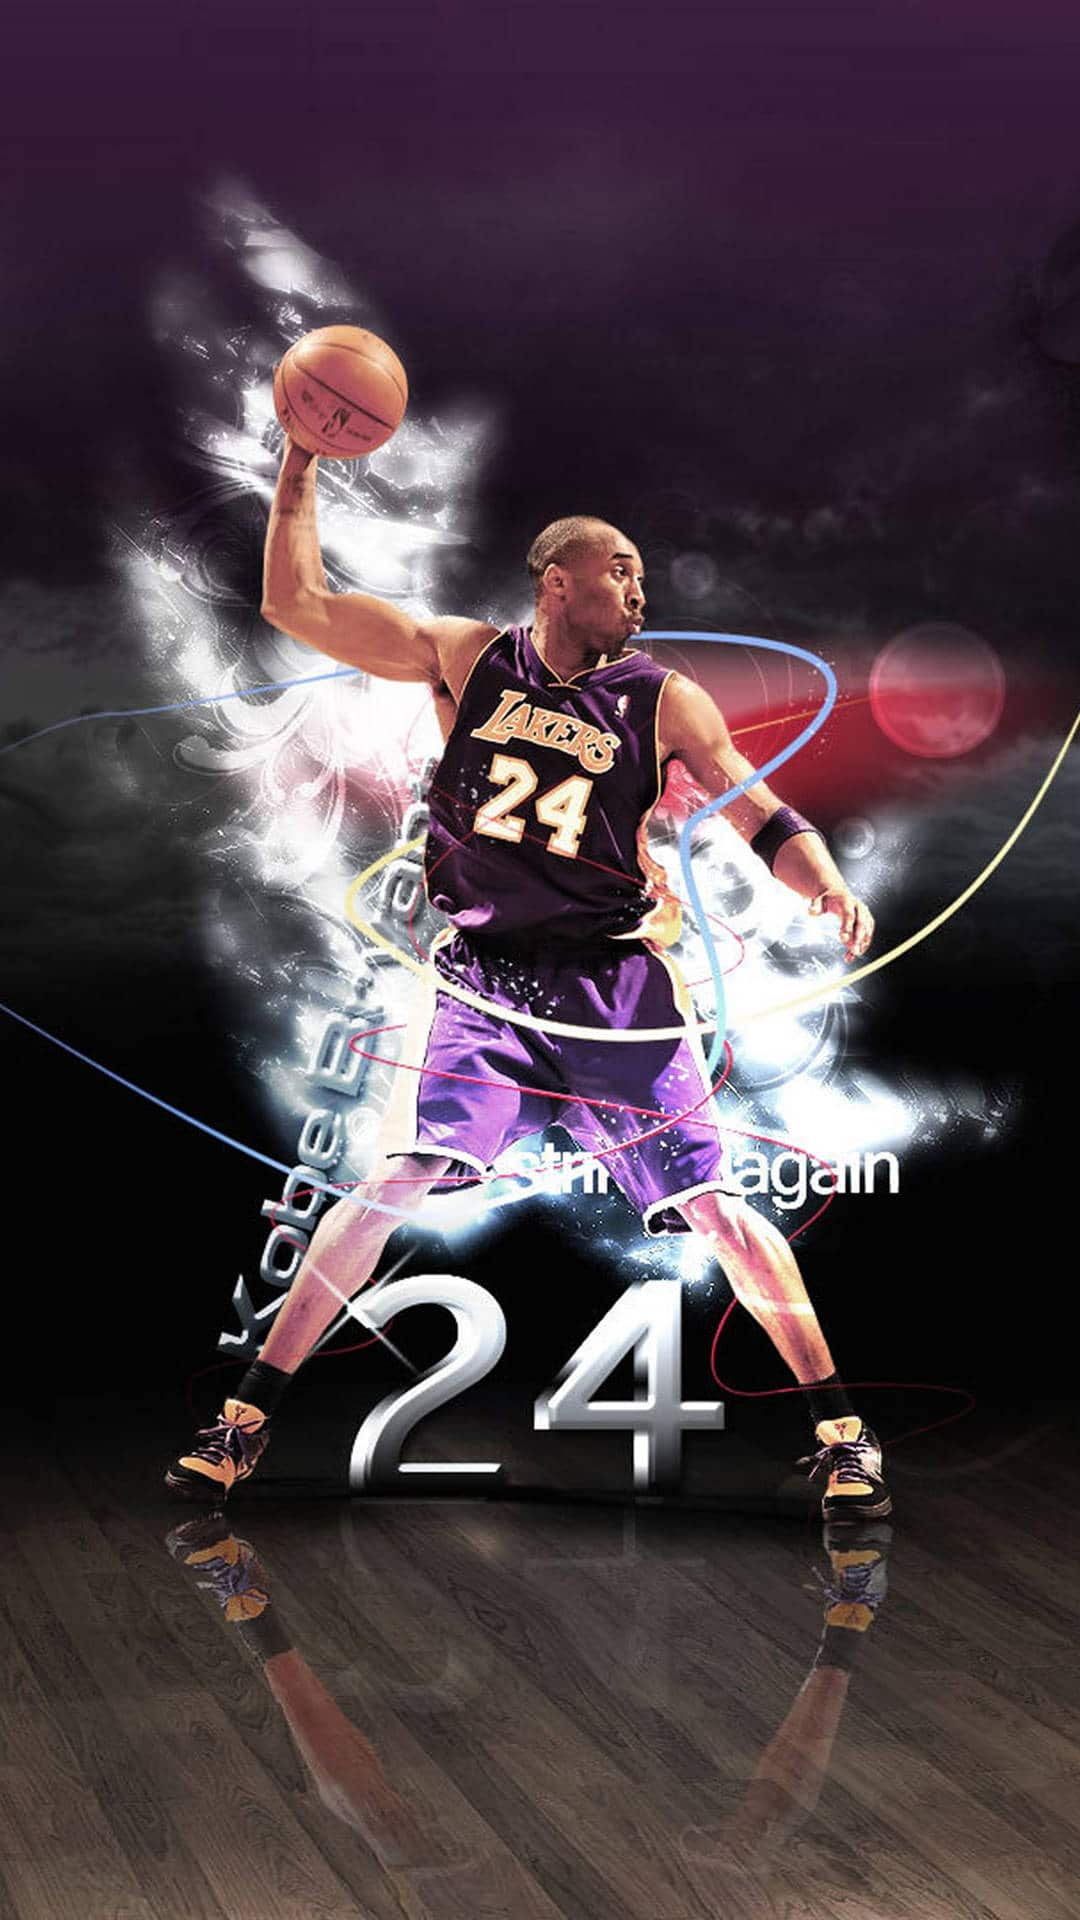 kobe bryant live wallpaper iphone 6s